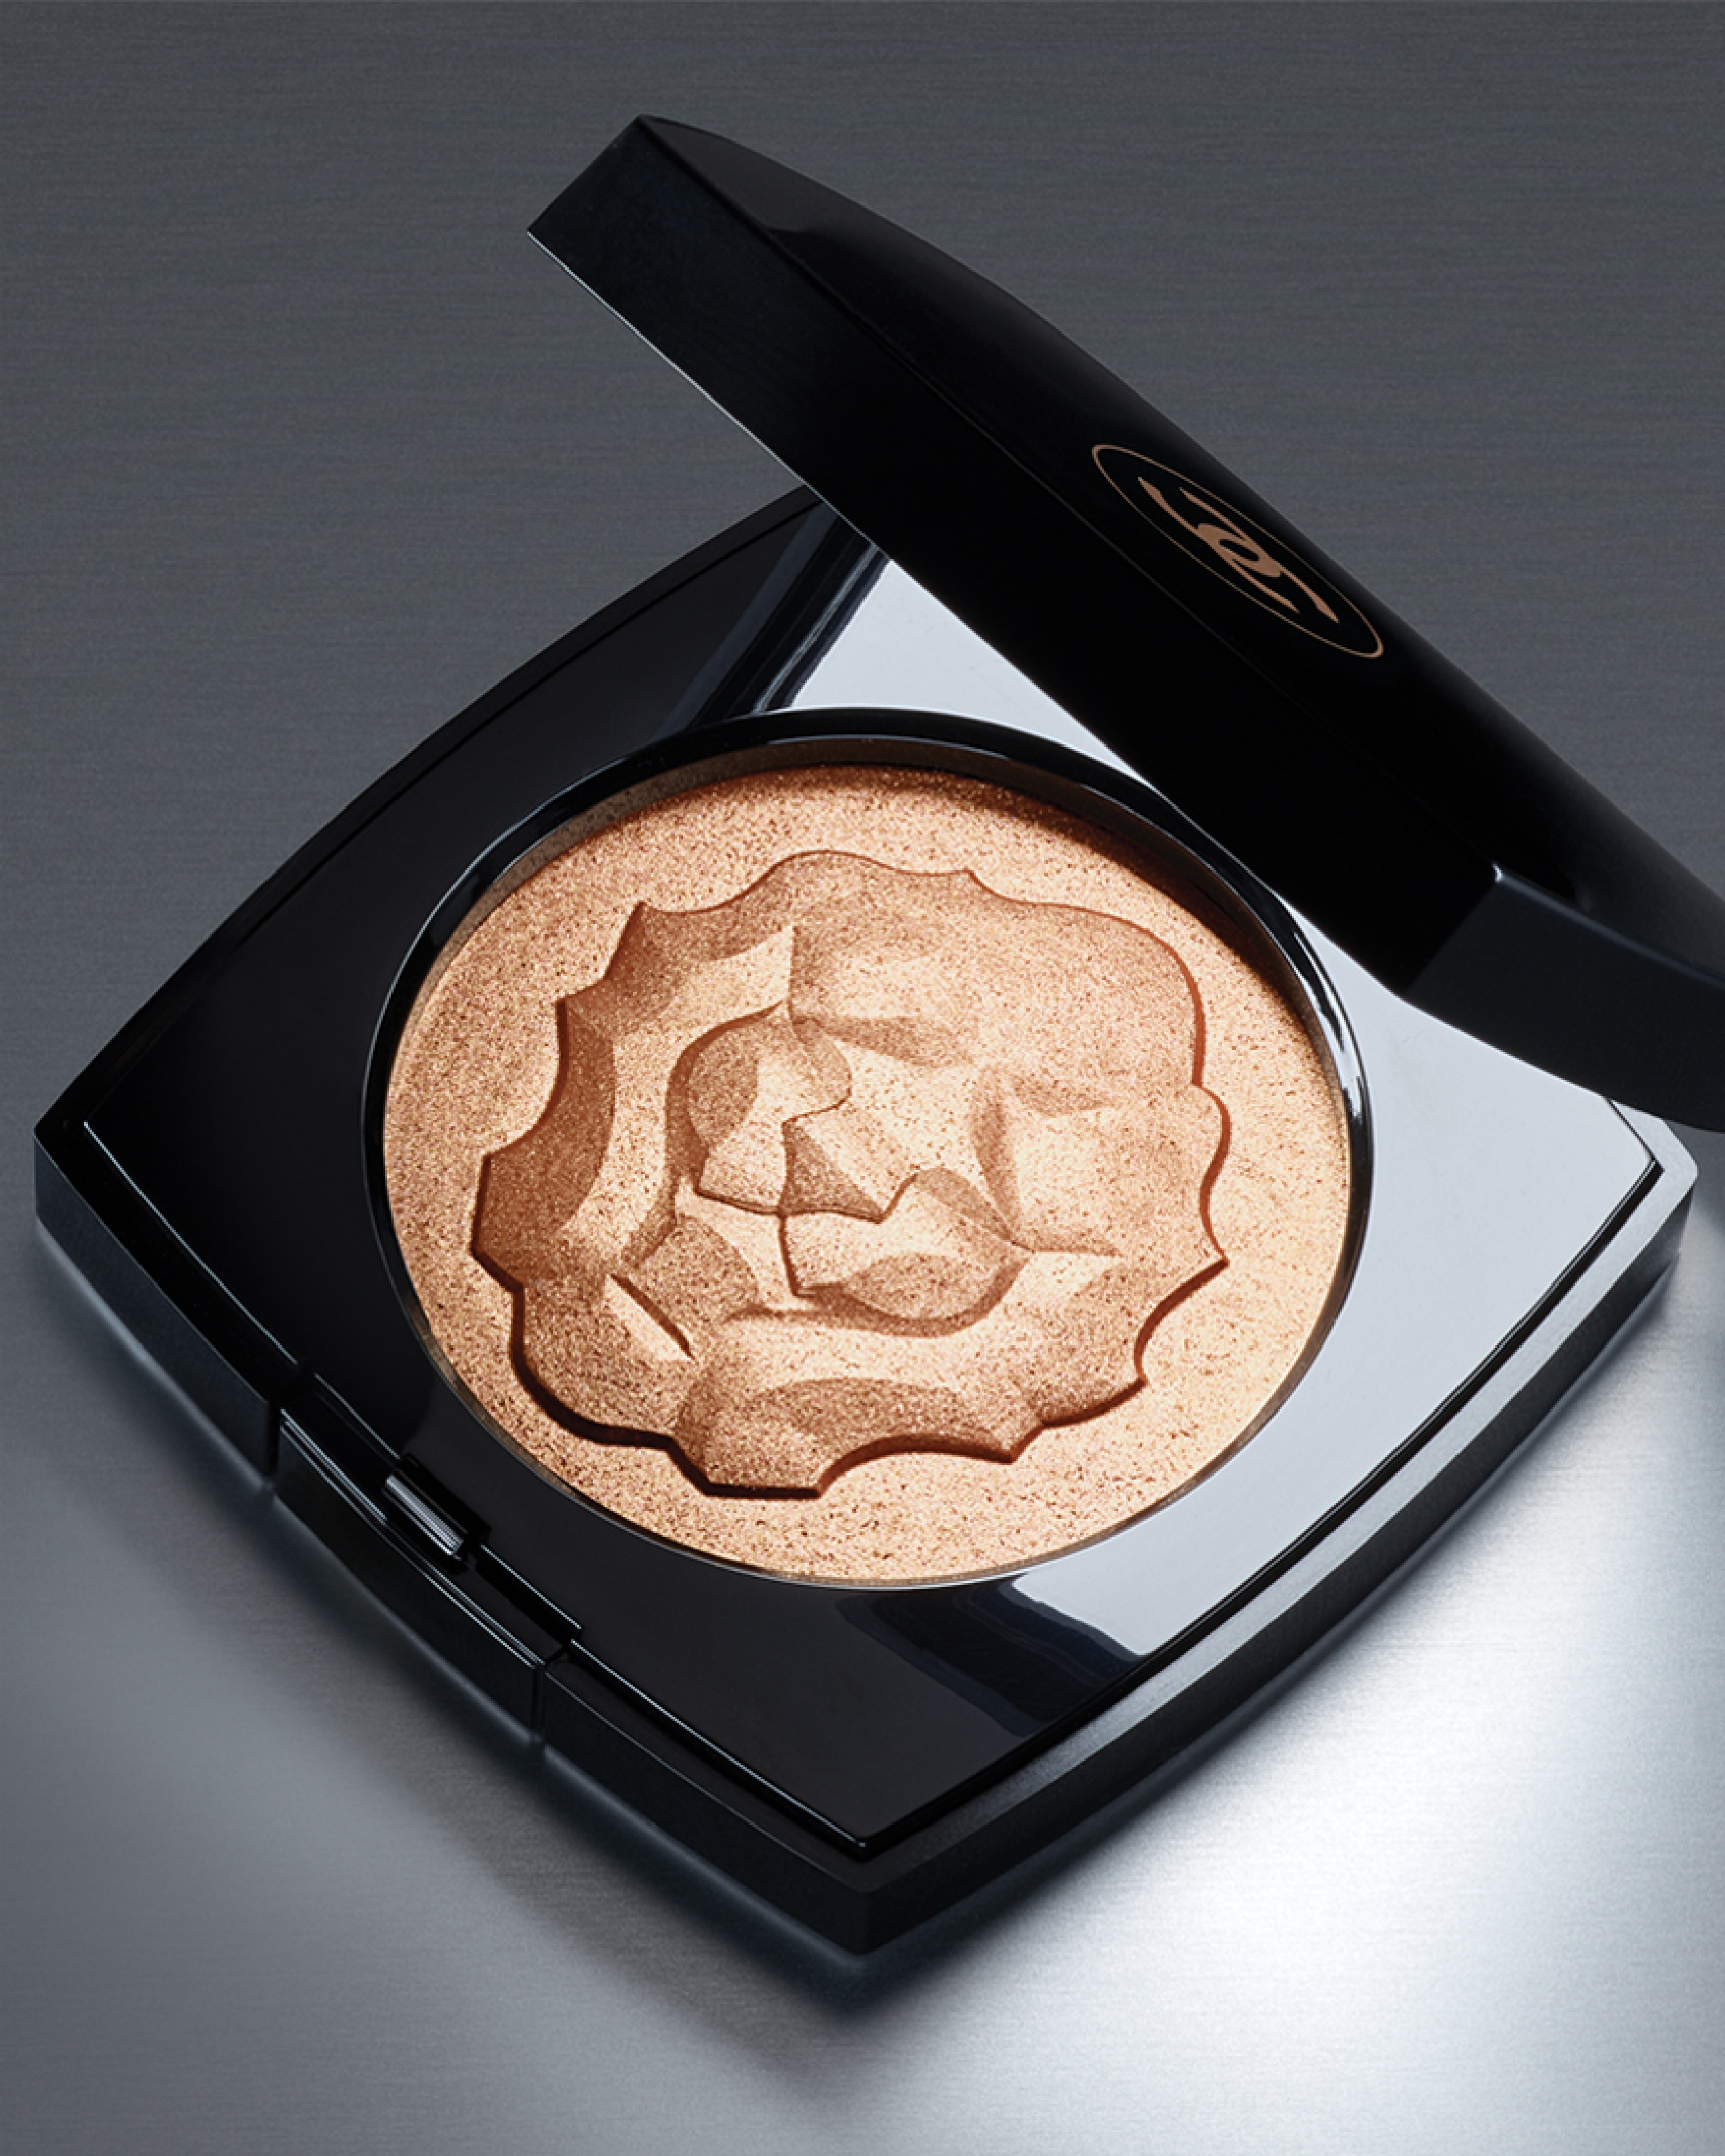 Chanel's Make Up Holiday Collection